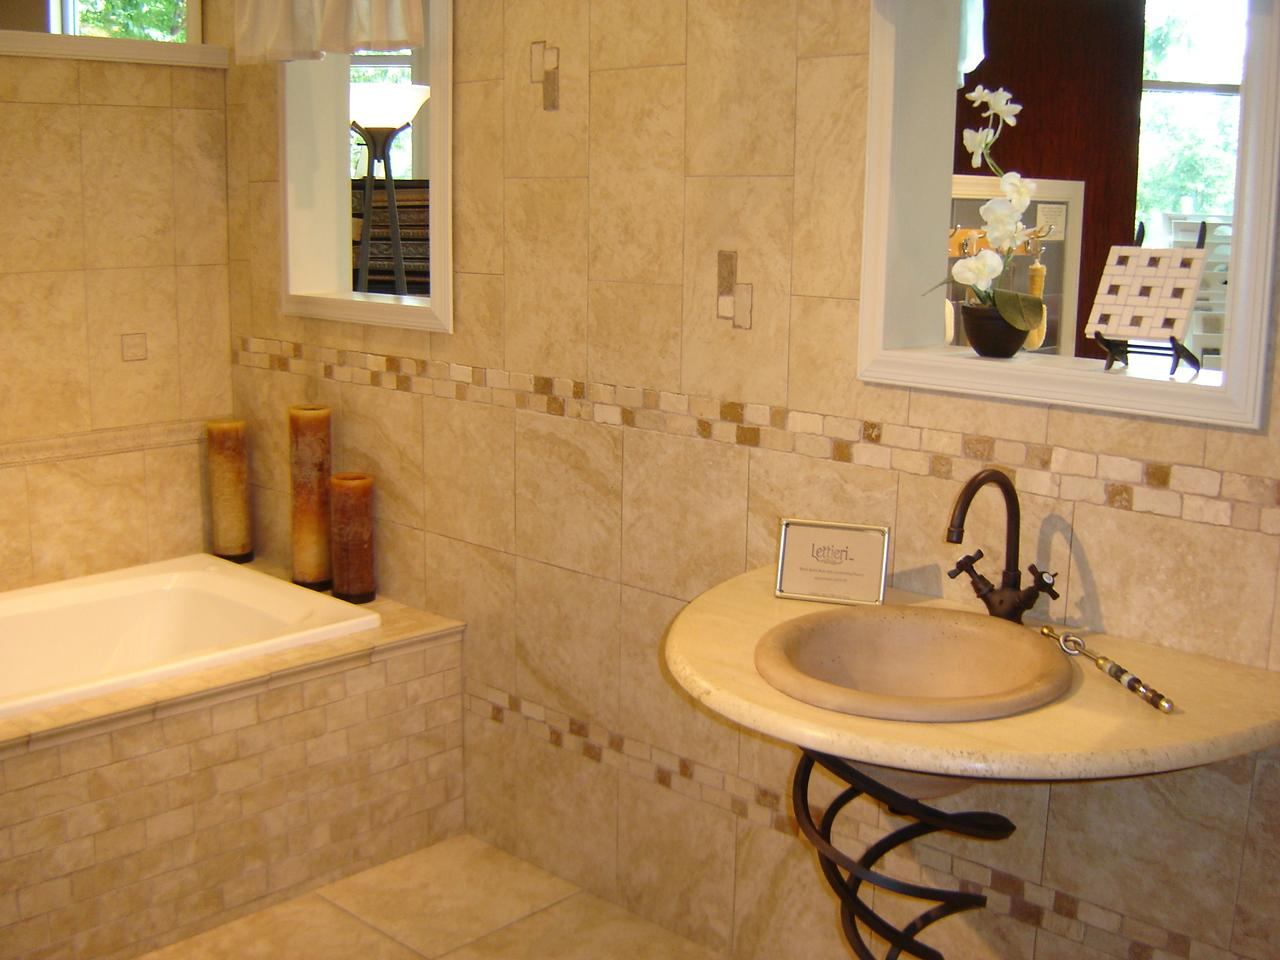 Bathroom wall tile ideas for small bathrooms Photo - 1